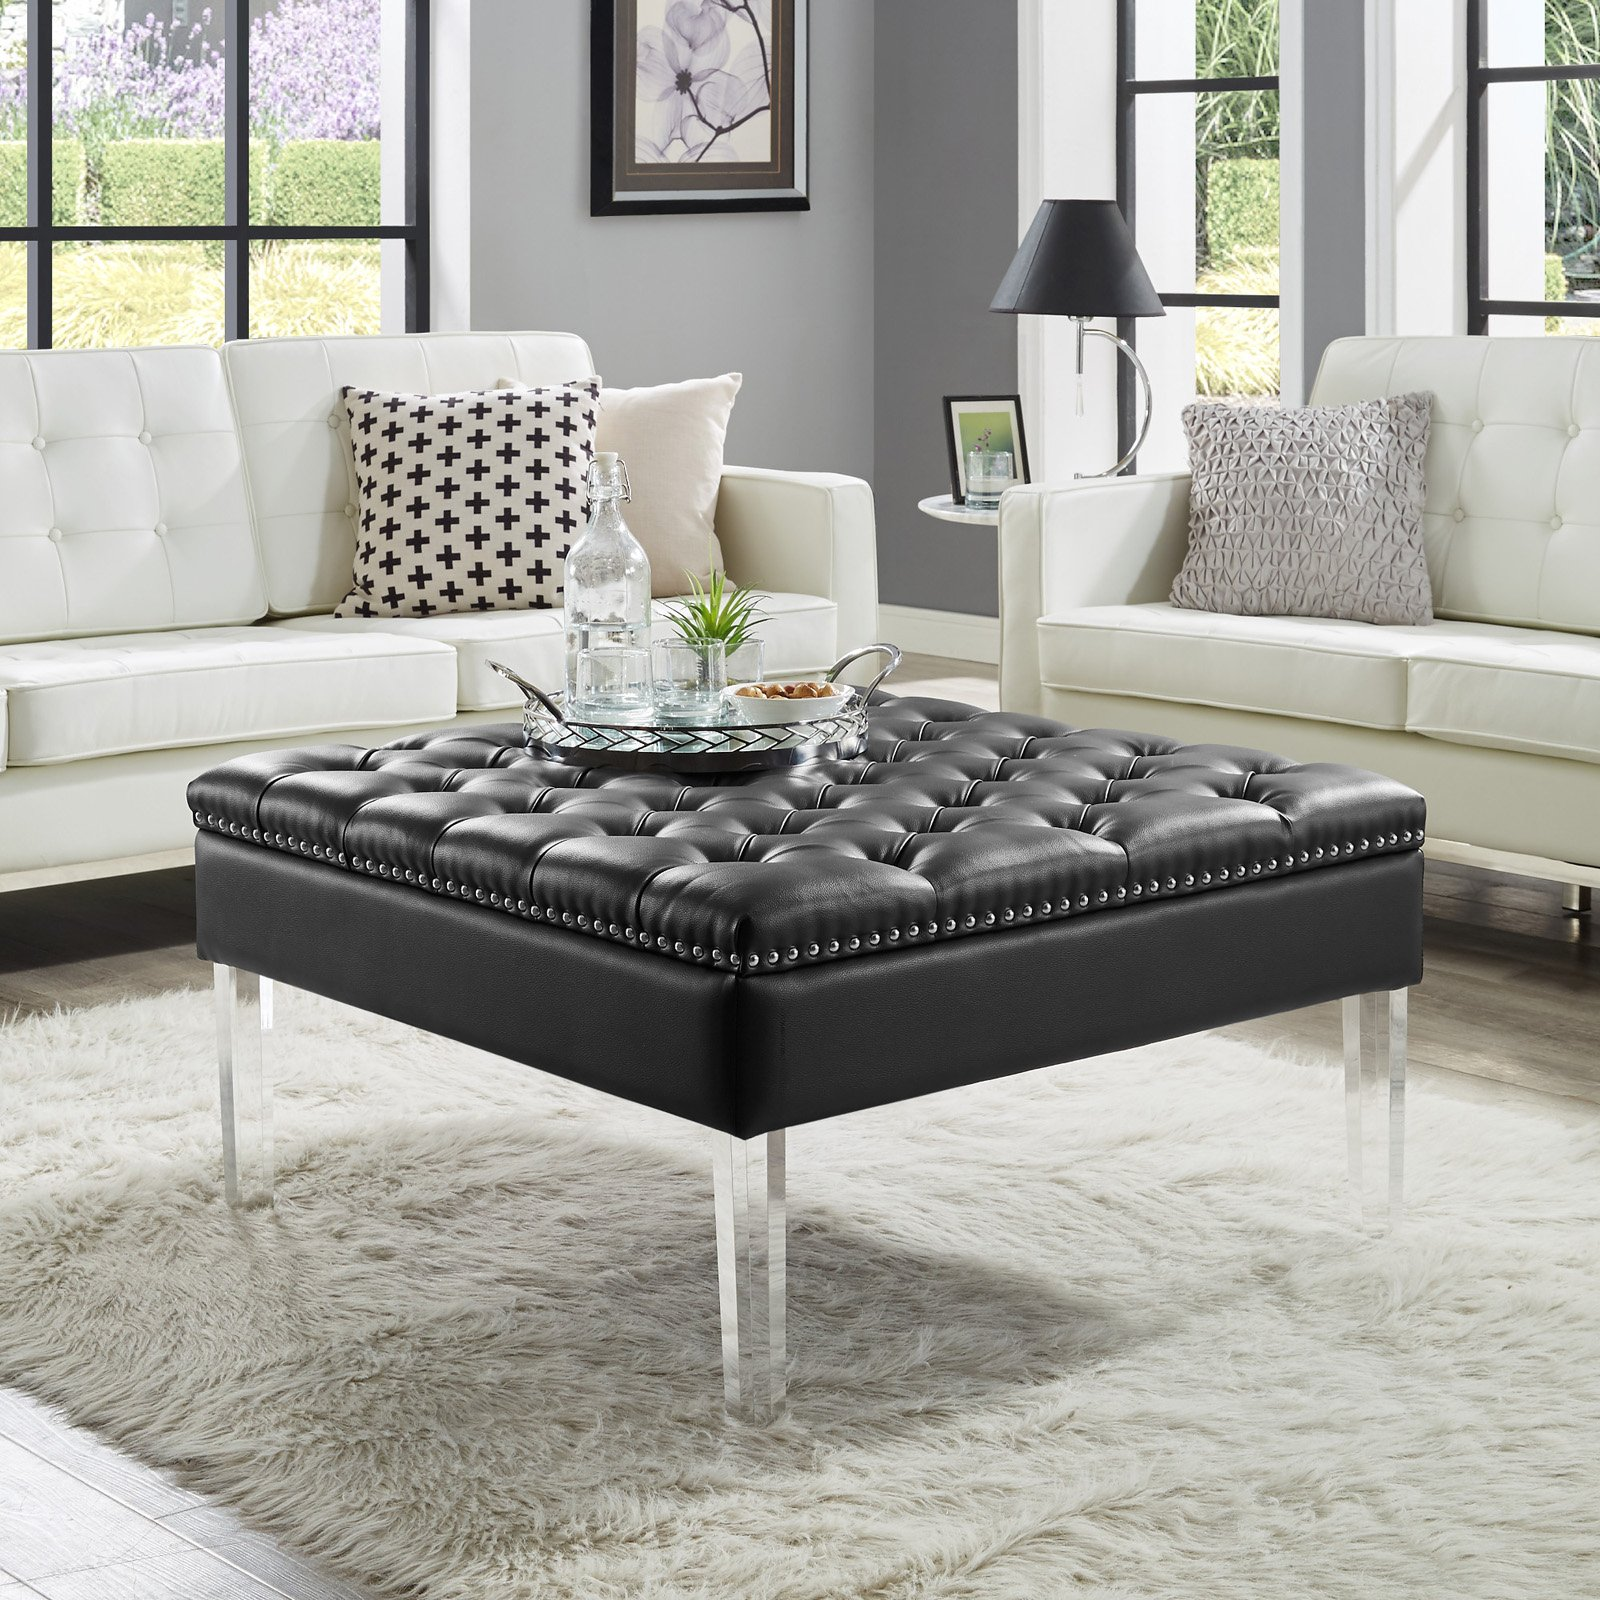 Inspired Home Kayla Square Faux Leather Coffee Table Ottoman   Walmart.com